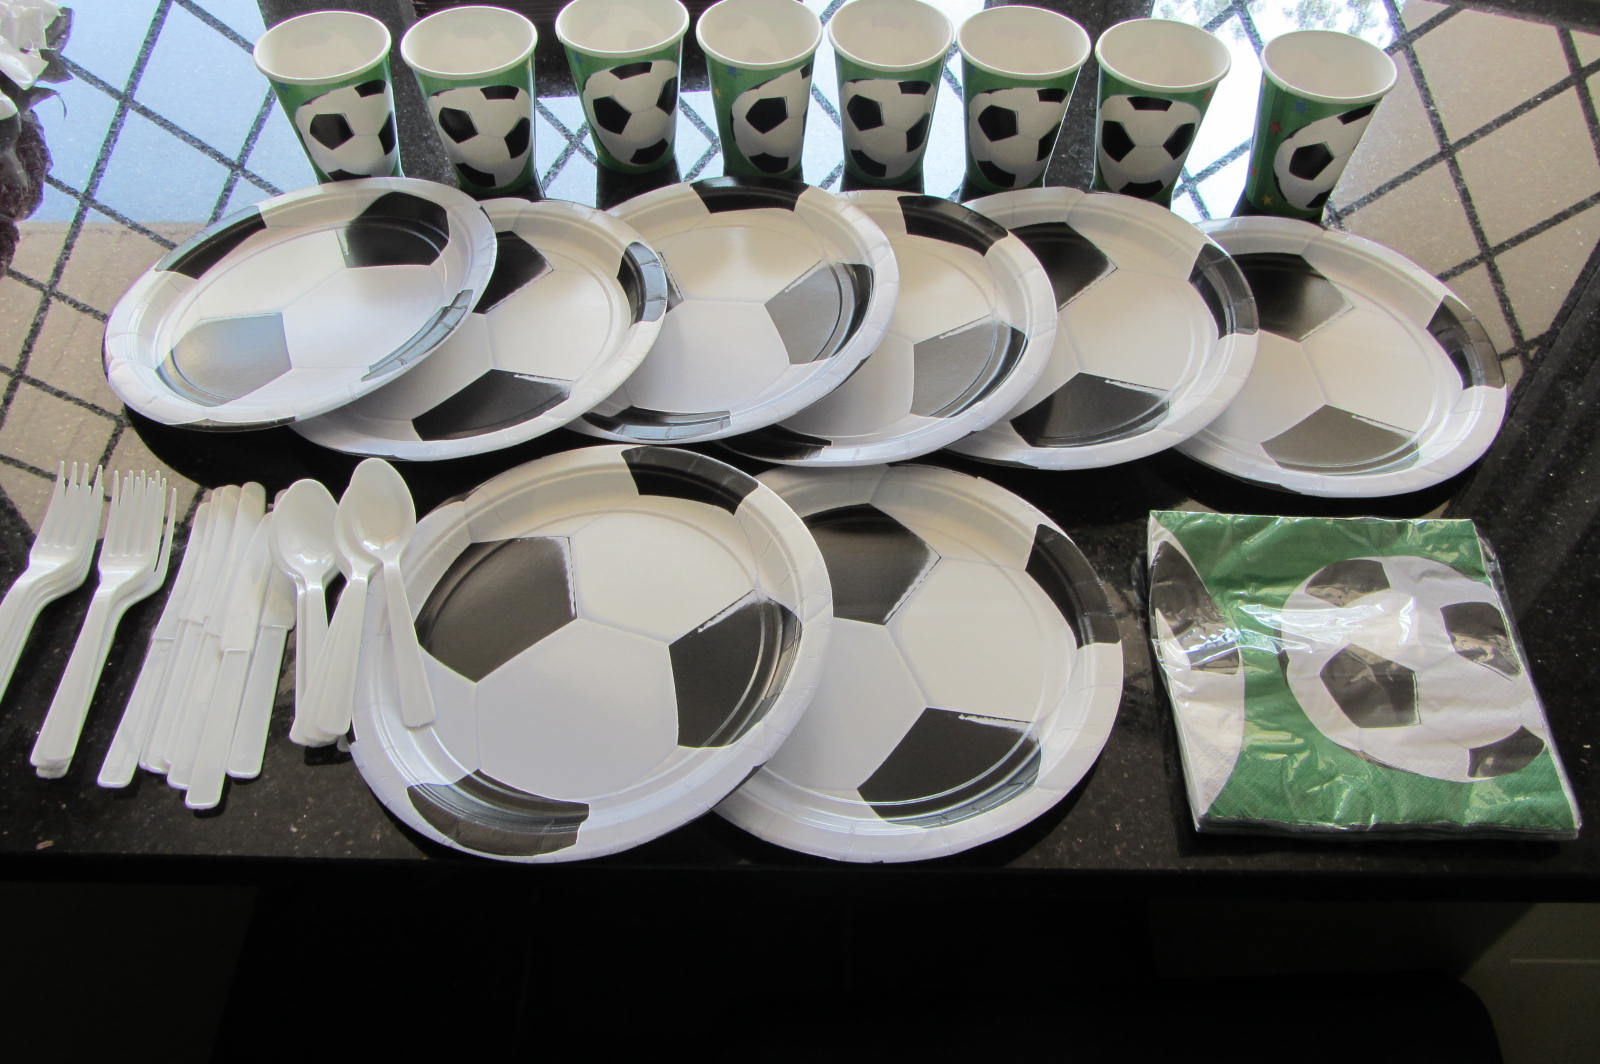 ... KIDS-PARTY-NAPKINS-PLATES-CUTLERY-CUPS-YOU-CHOOSE-SOCCER-FUN-BARGAINS